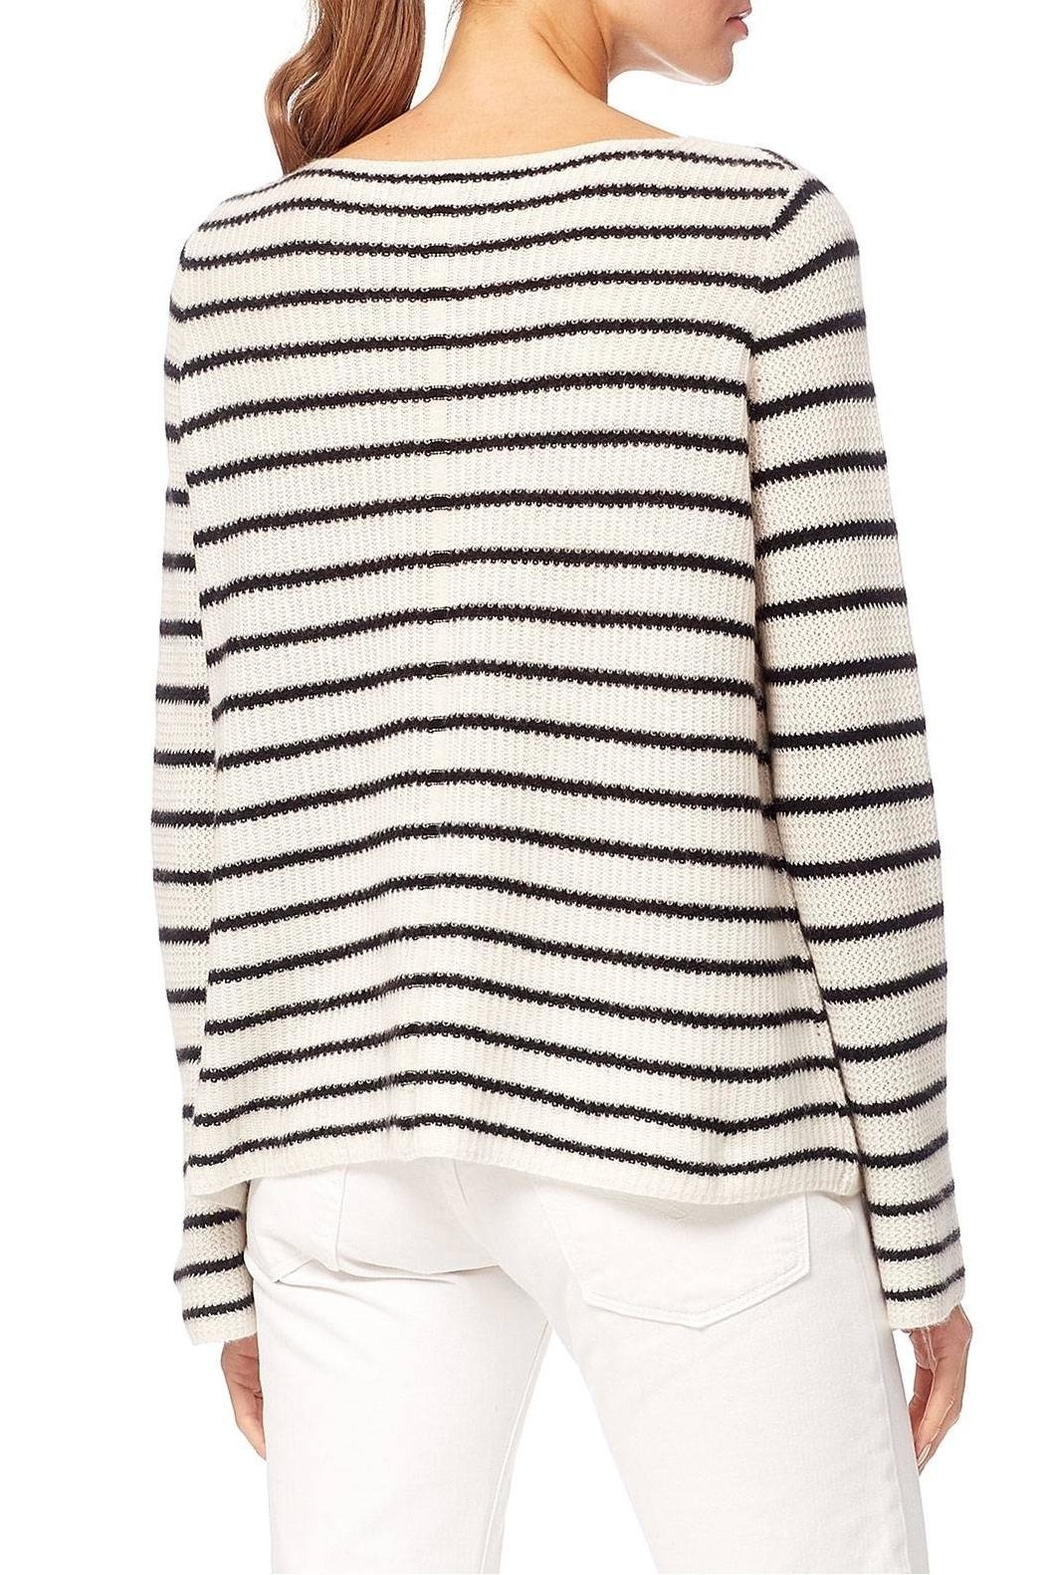 360 Cashmere Faye Sweater - Front Full Image